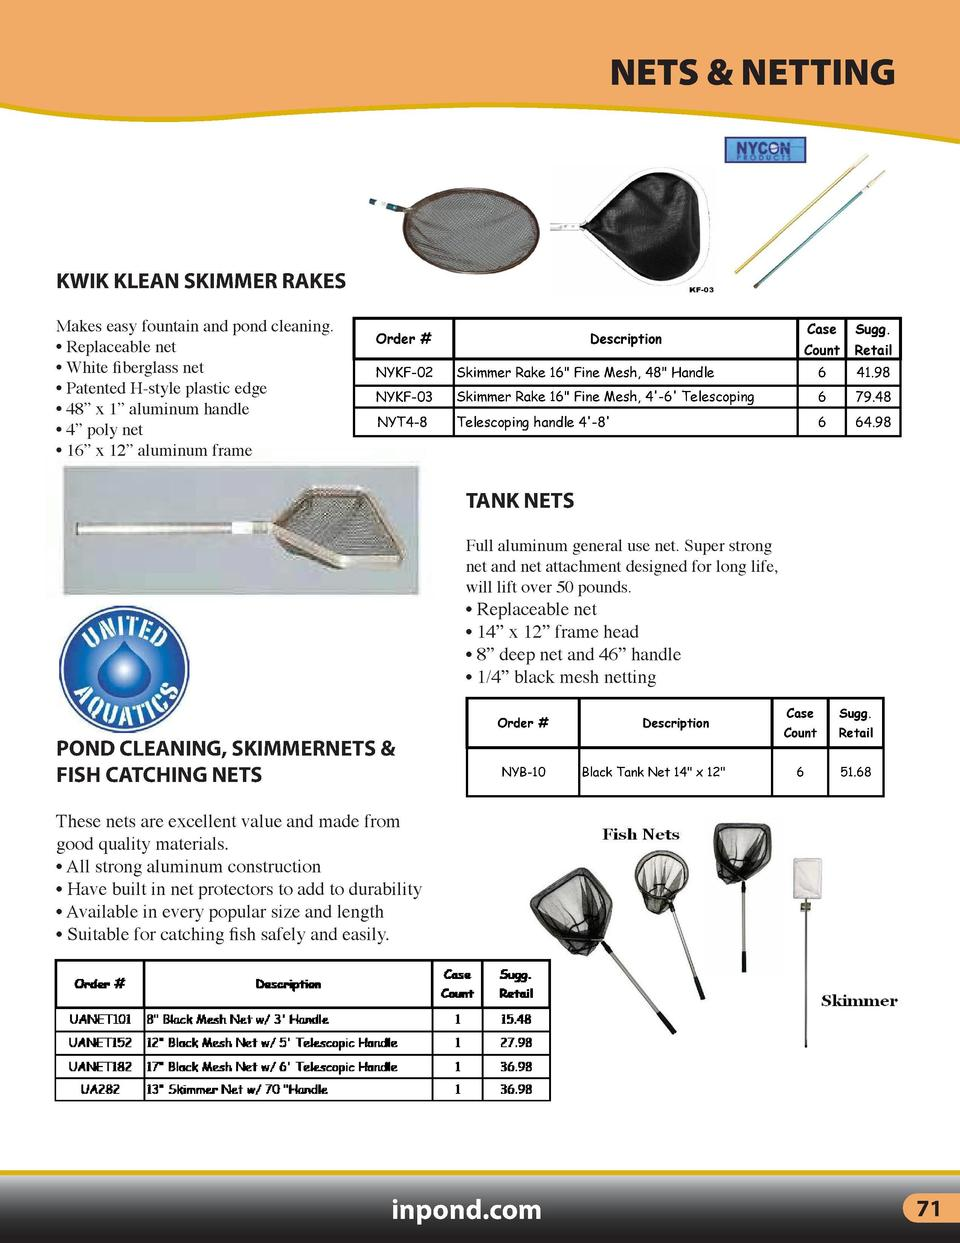 TEST KITS  NETS   NETTING  LIQUID TEST KITS  KWIK KLEAN SKIMMER RAKES  Pond Care liquid test kits are complete for testing...